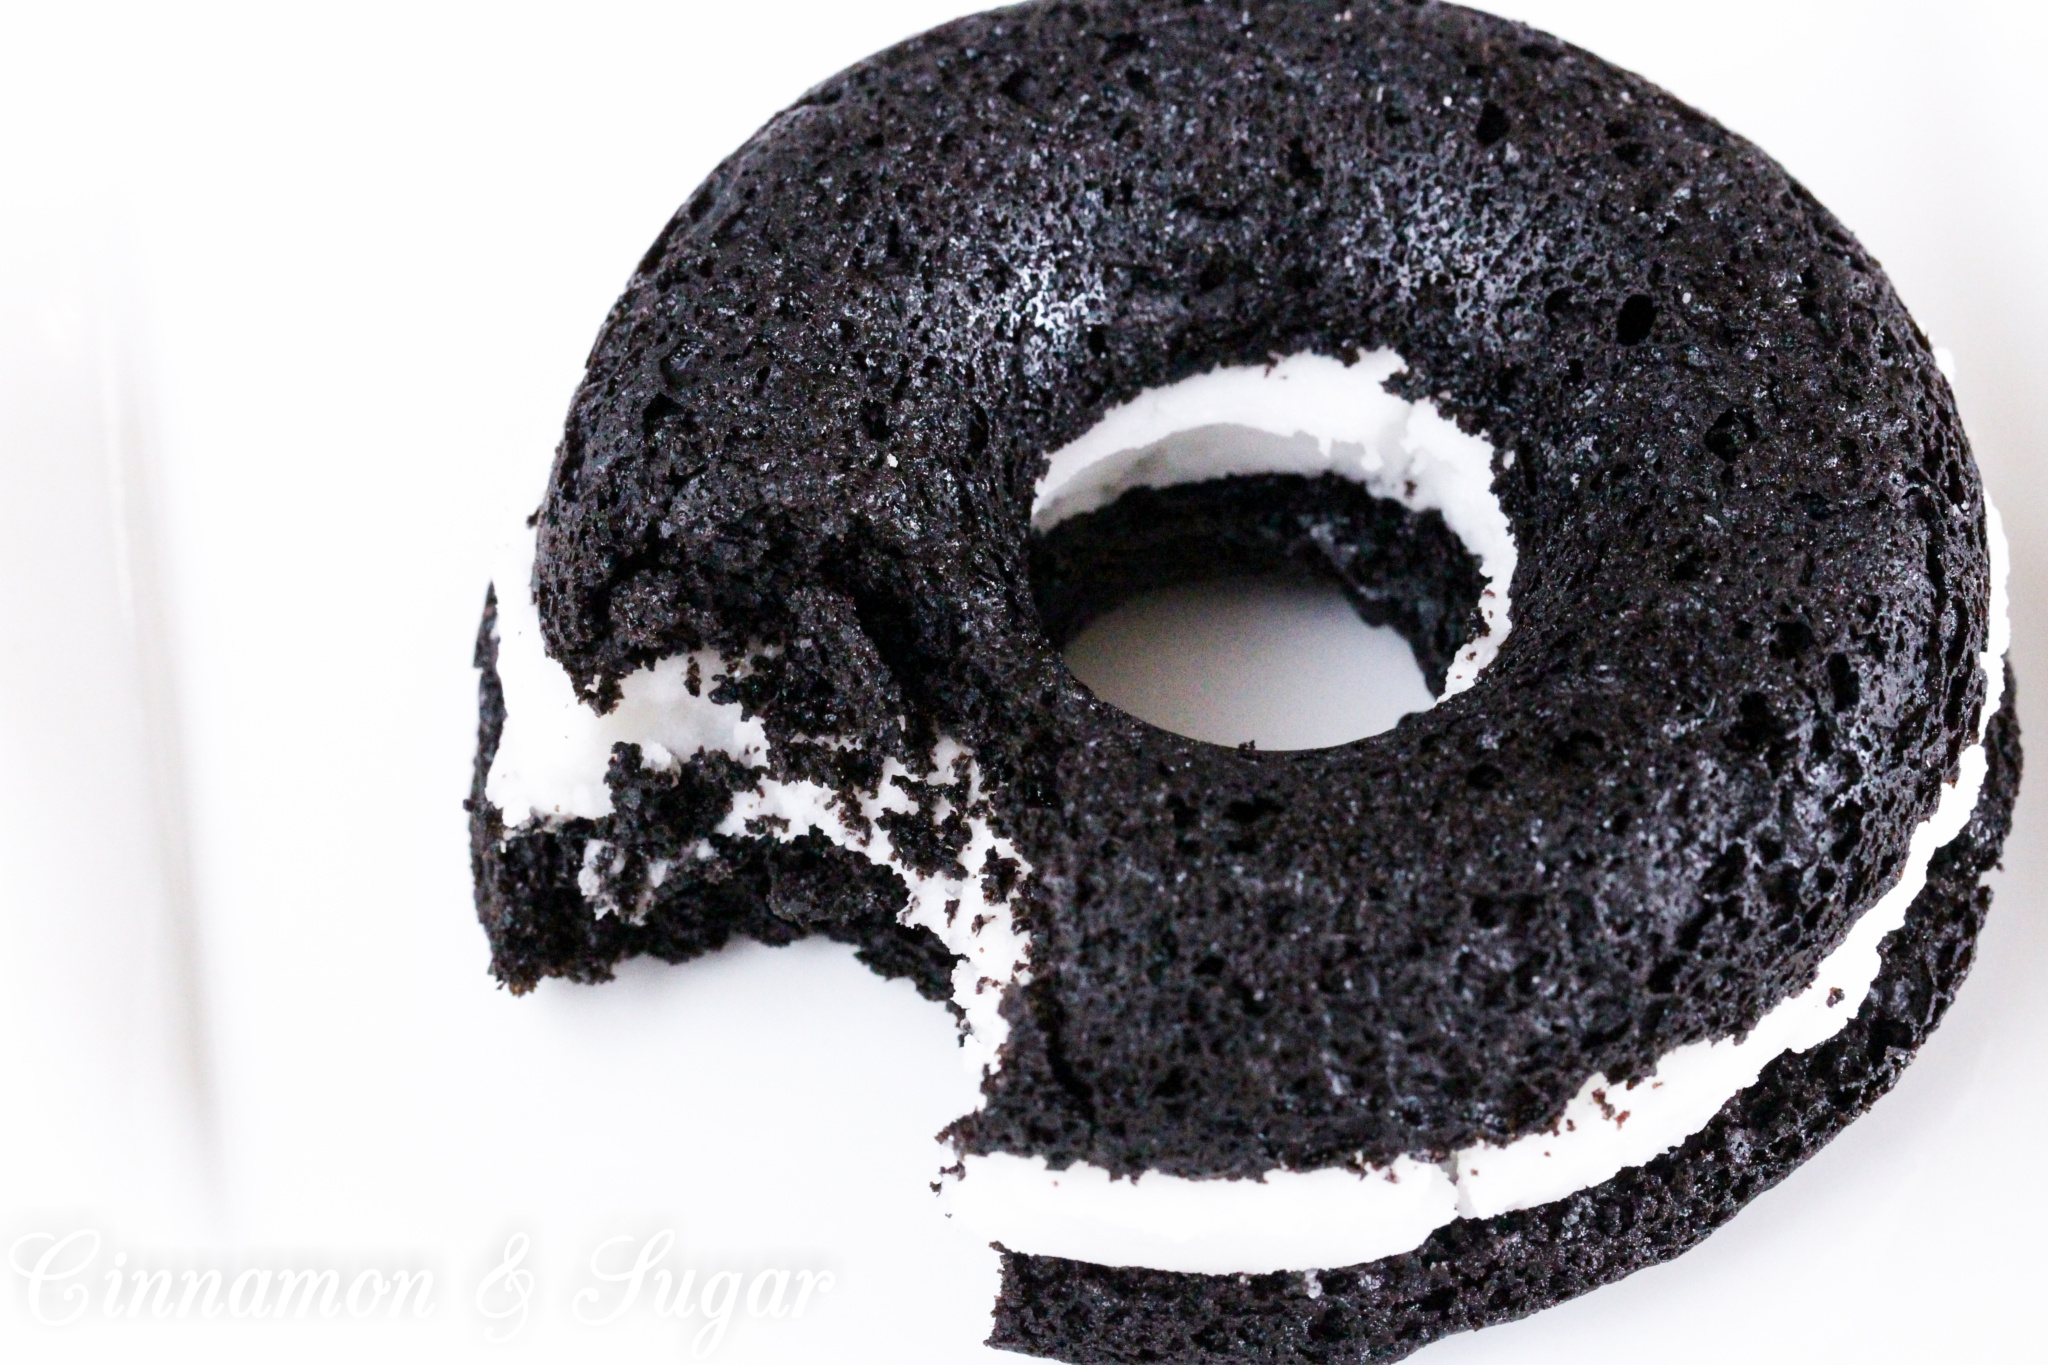 Black-and-White Baked Donuts